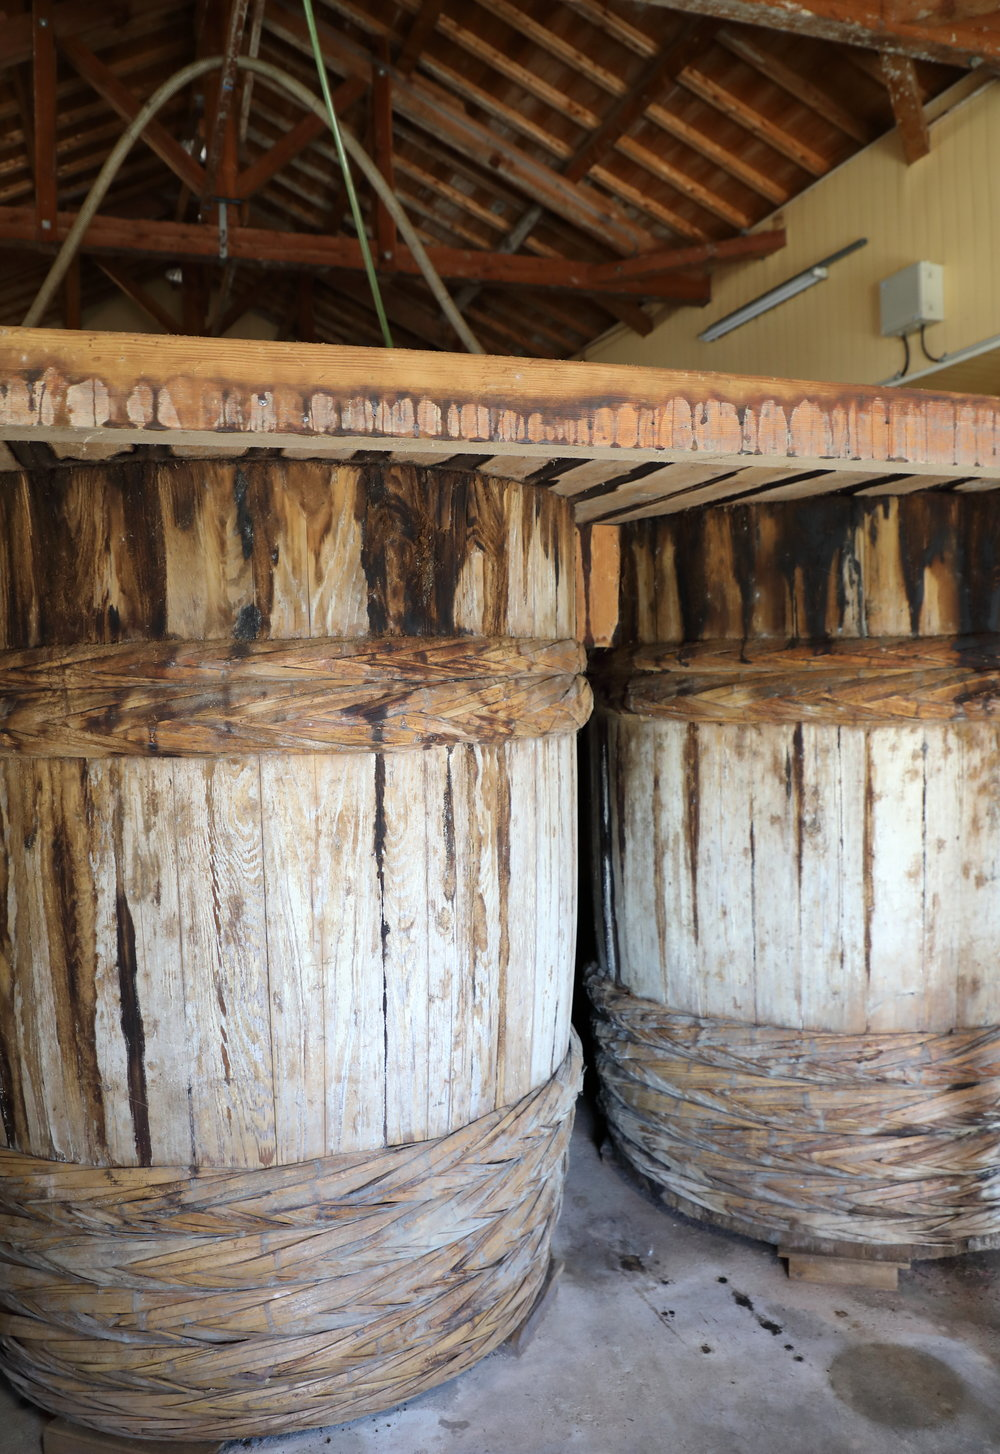 The large wooden barrels called  kioke  are not only vessels in which to make soy sauce but also a key ingredient given how they influence the soy sauce's aroma, color, and taste.